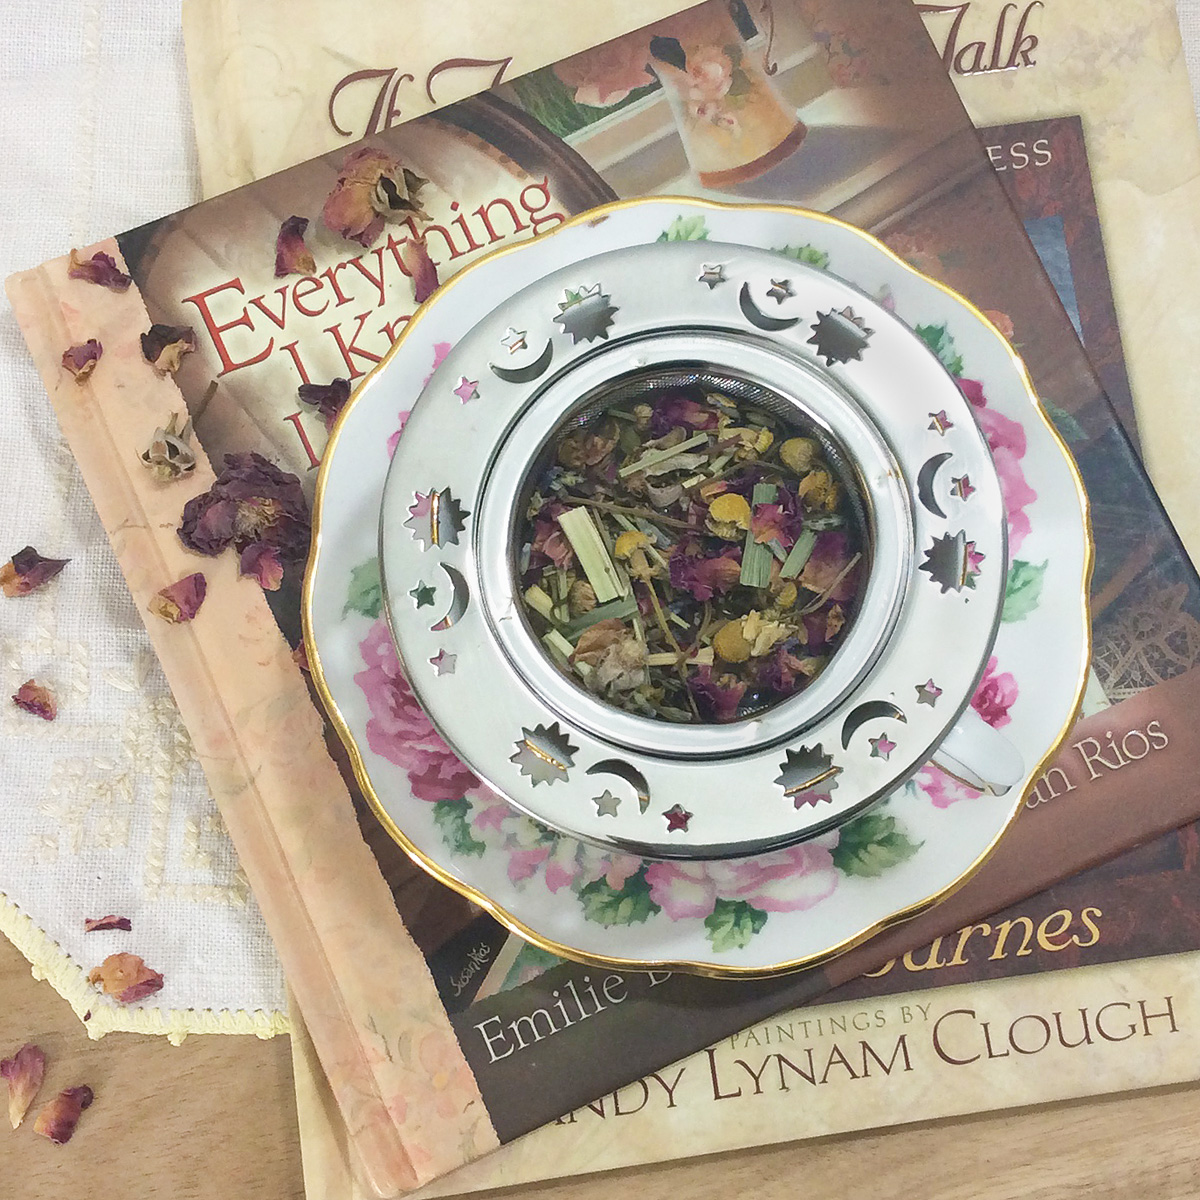 A rose patterned teacup with a celestial nest infuser full of loose leaf tea of chamomile, rose, and lavender sits on a stack of books.